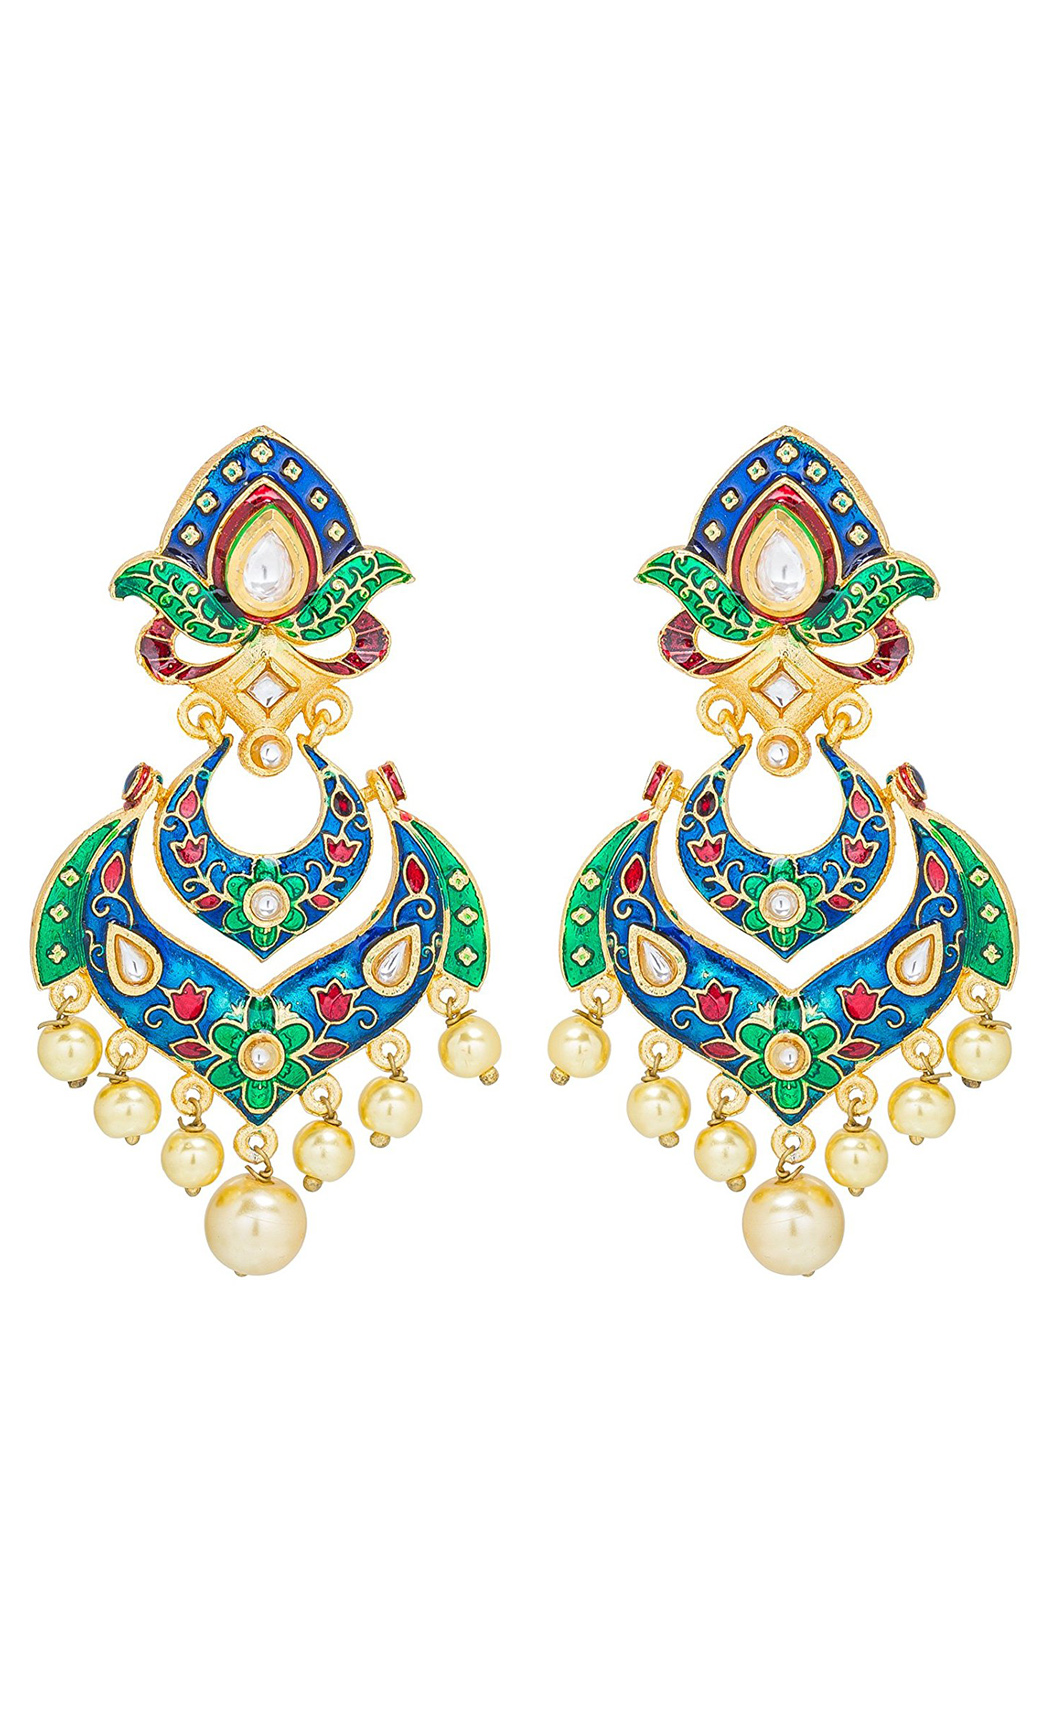 Blue and Green Meena Earrings | Wedding Earrings | Buy Online